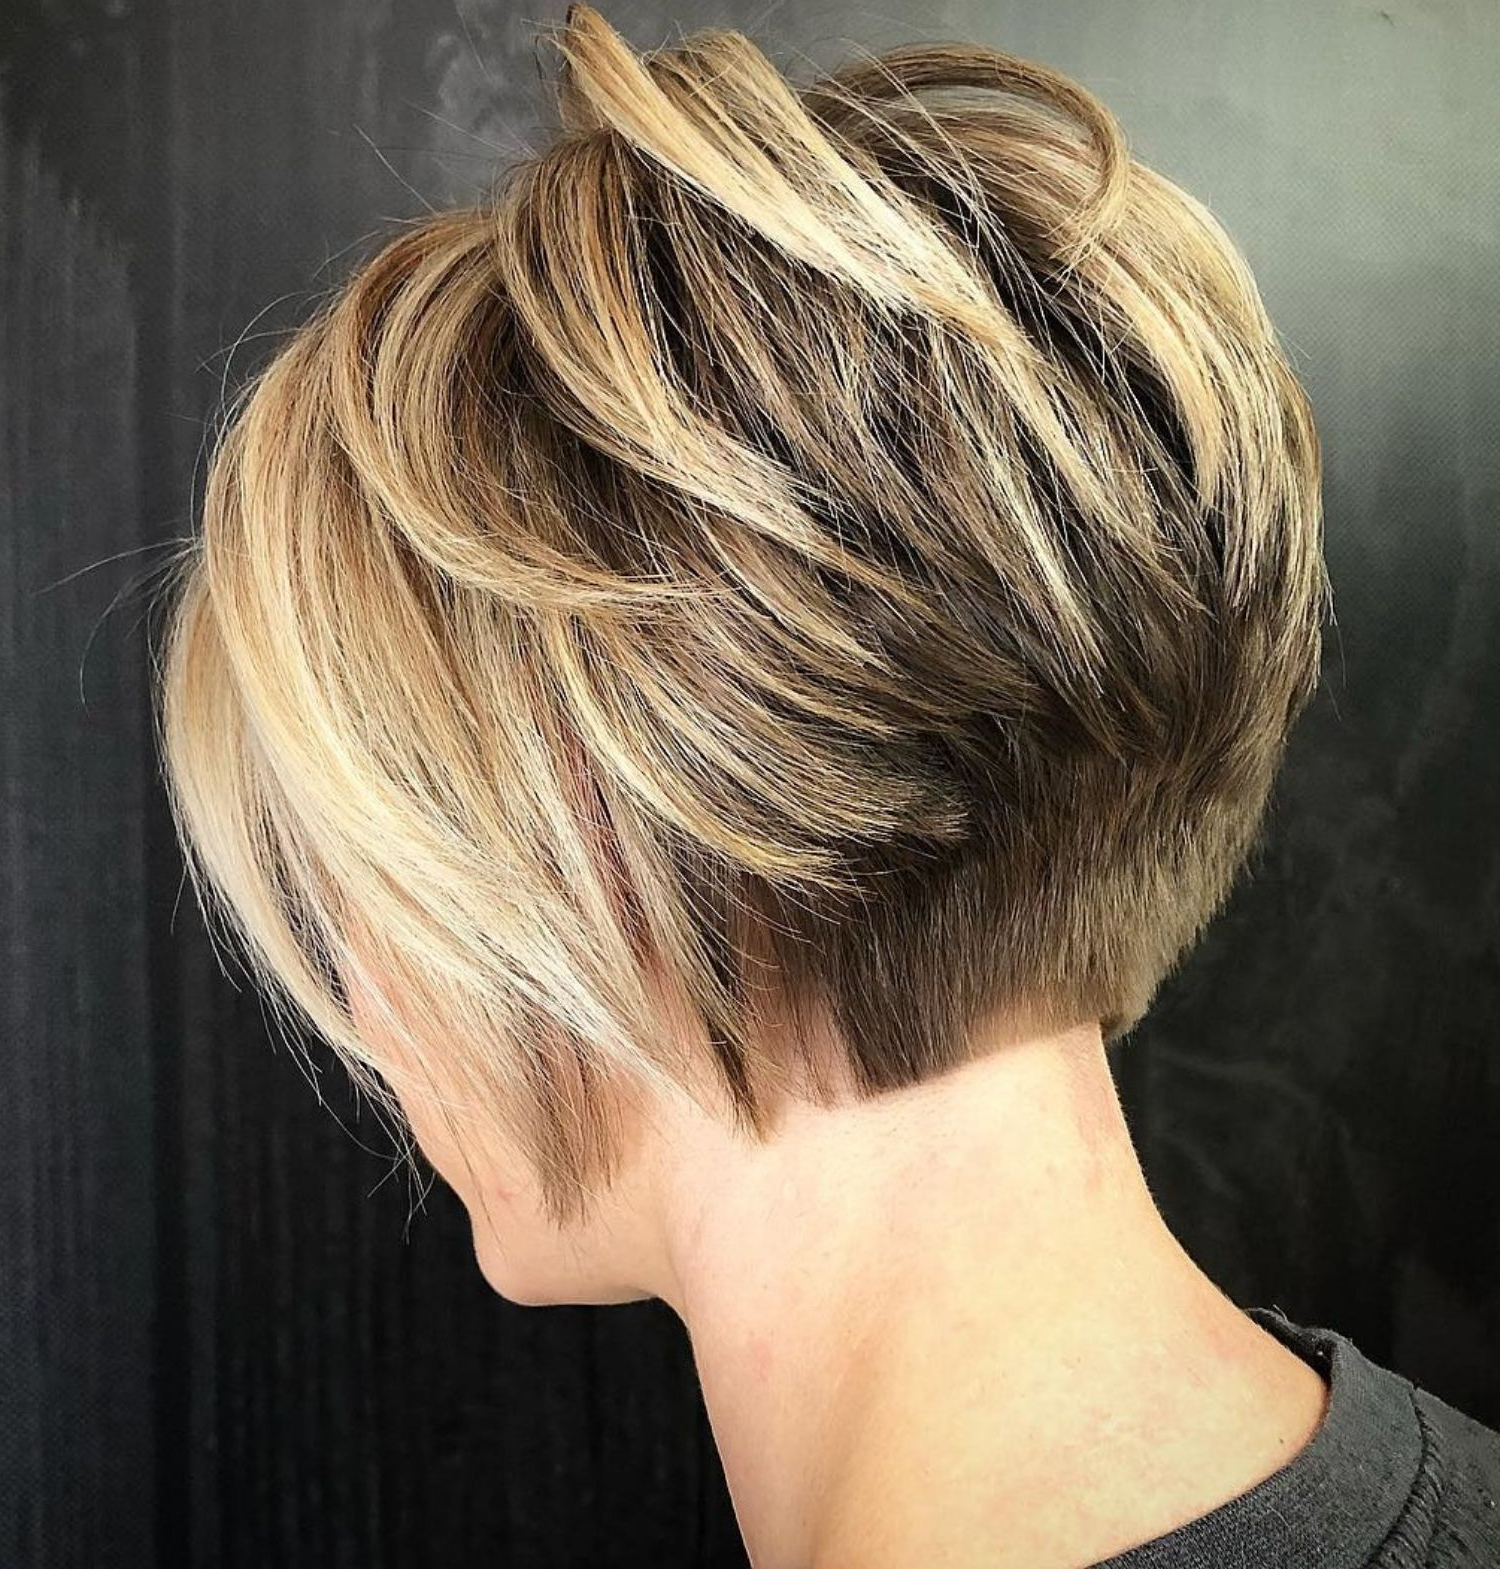 Most Current Short Choppy Layers Pixie Bob Hairstyles Intended For 60 Classy Short Haircuts And Hairstyles For Thick Hair (View 10 of 20)